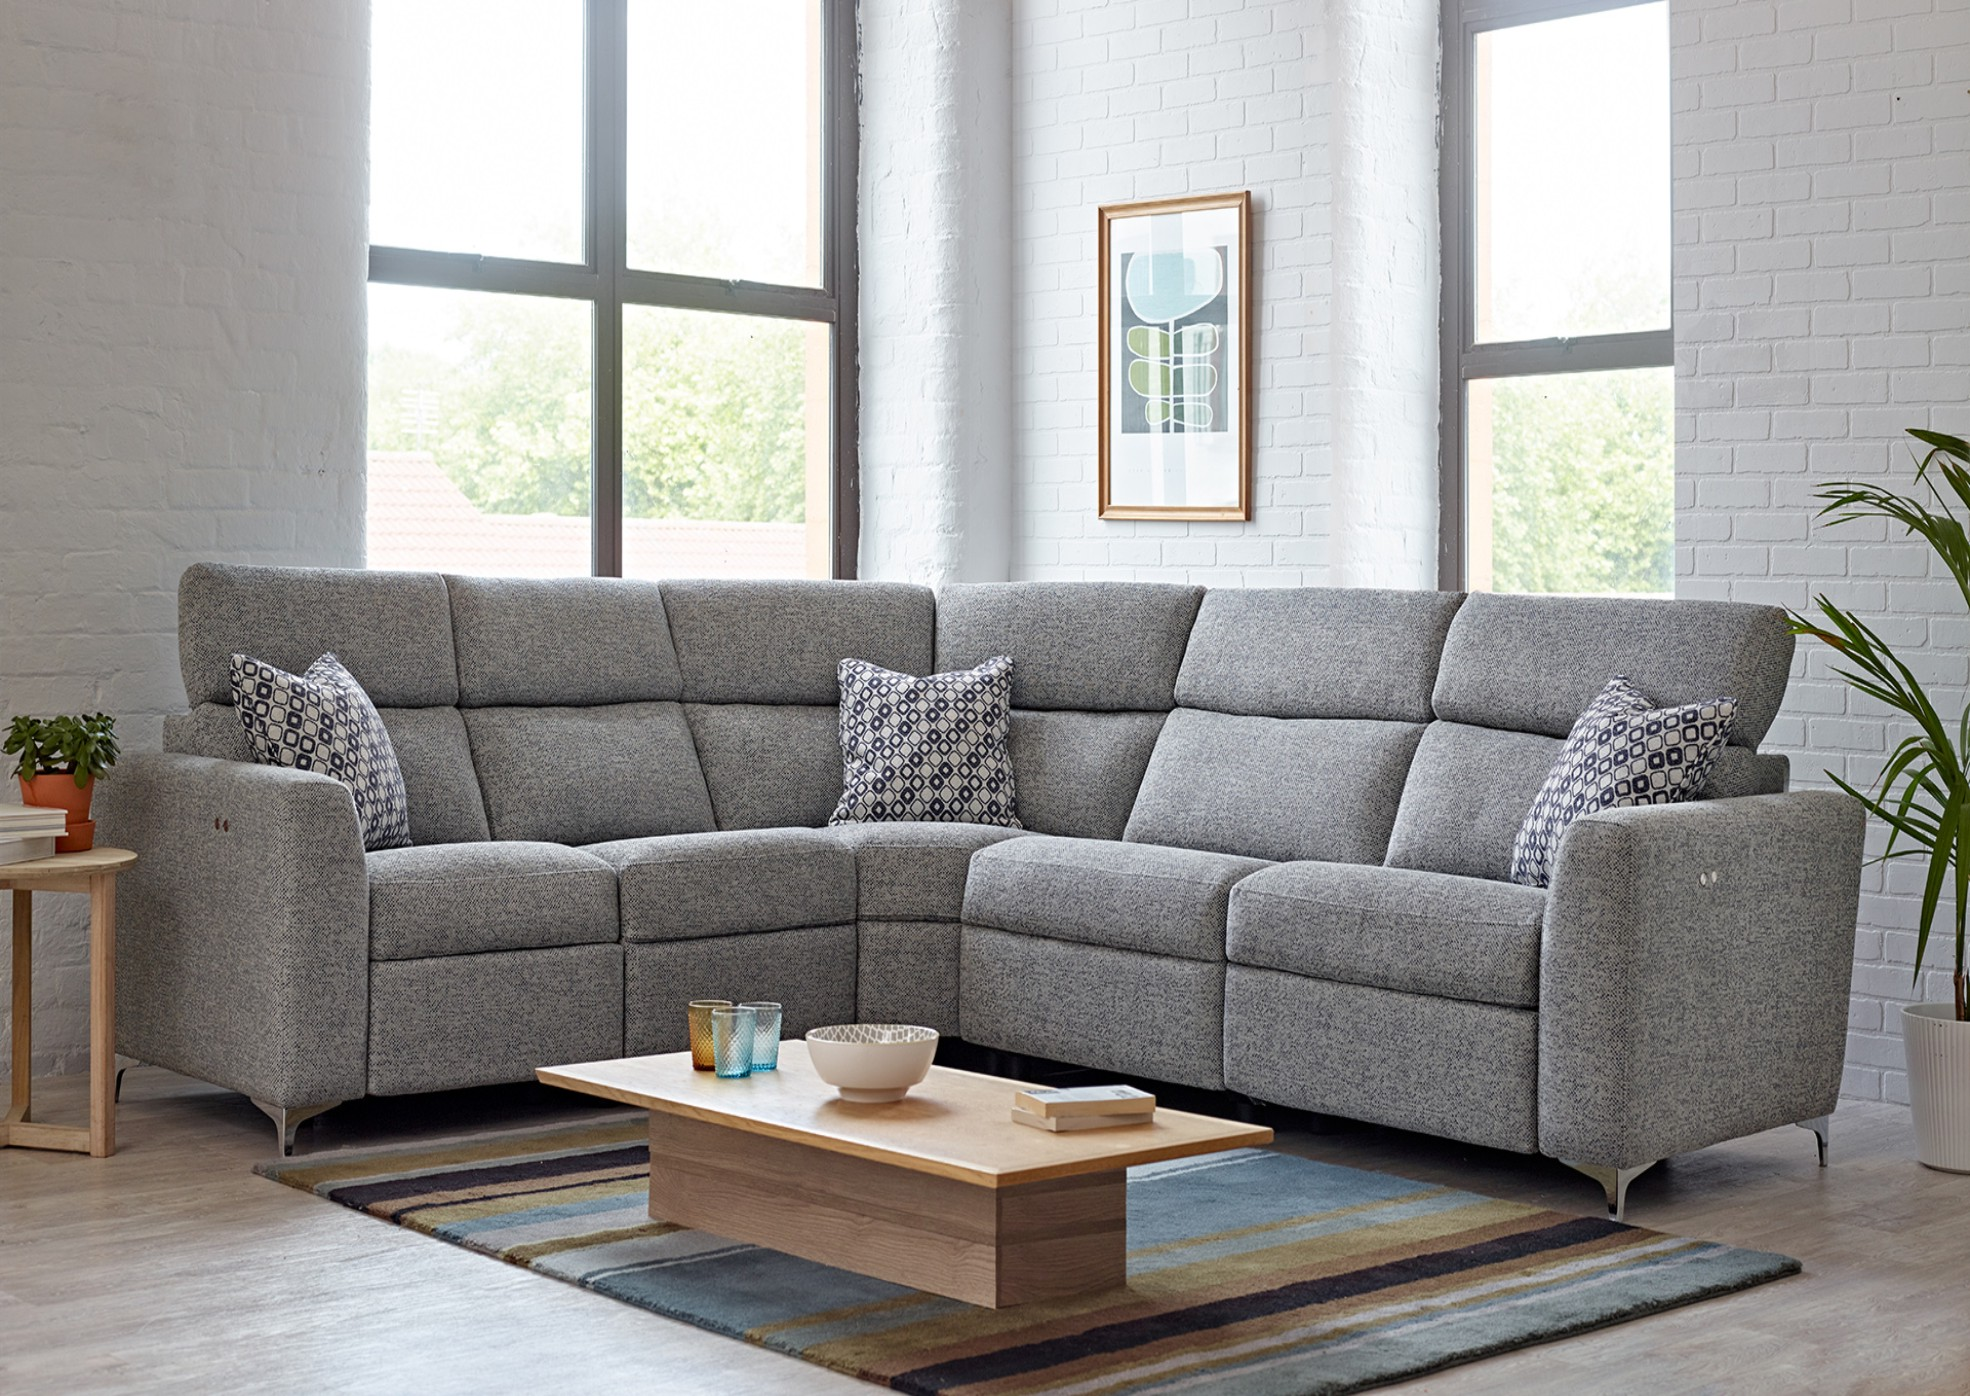 Elan Corner sofa 2 str 3 str fabric